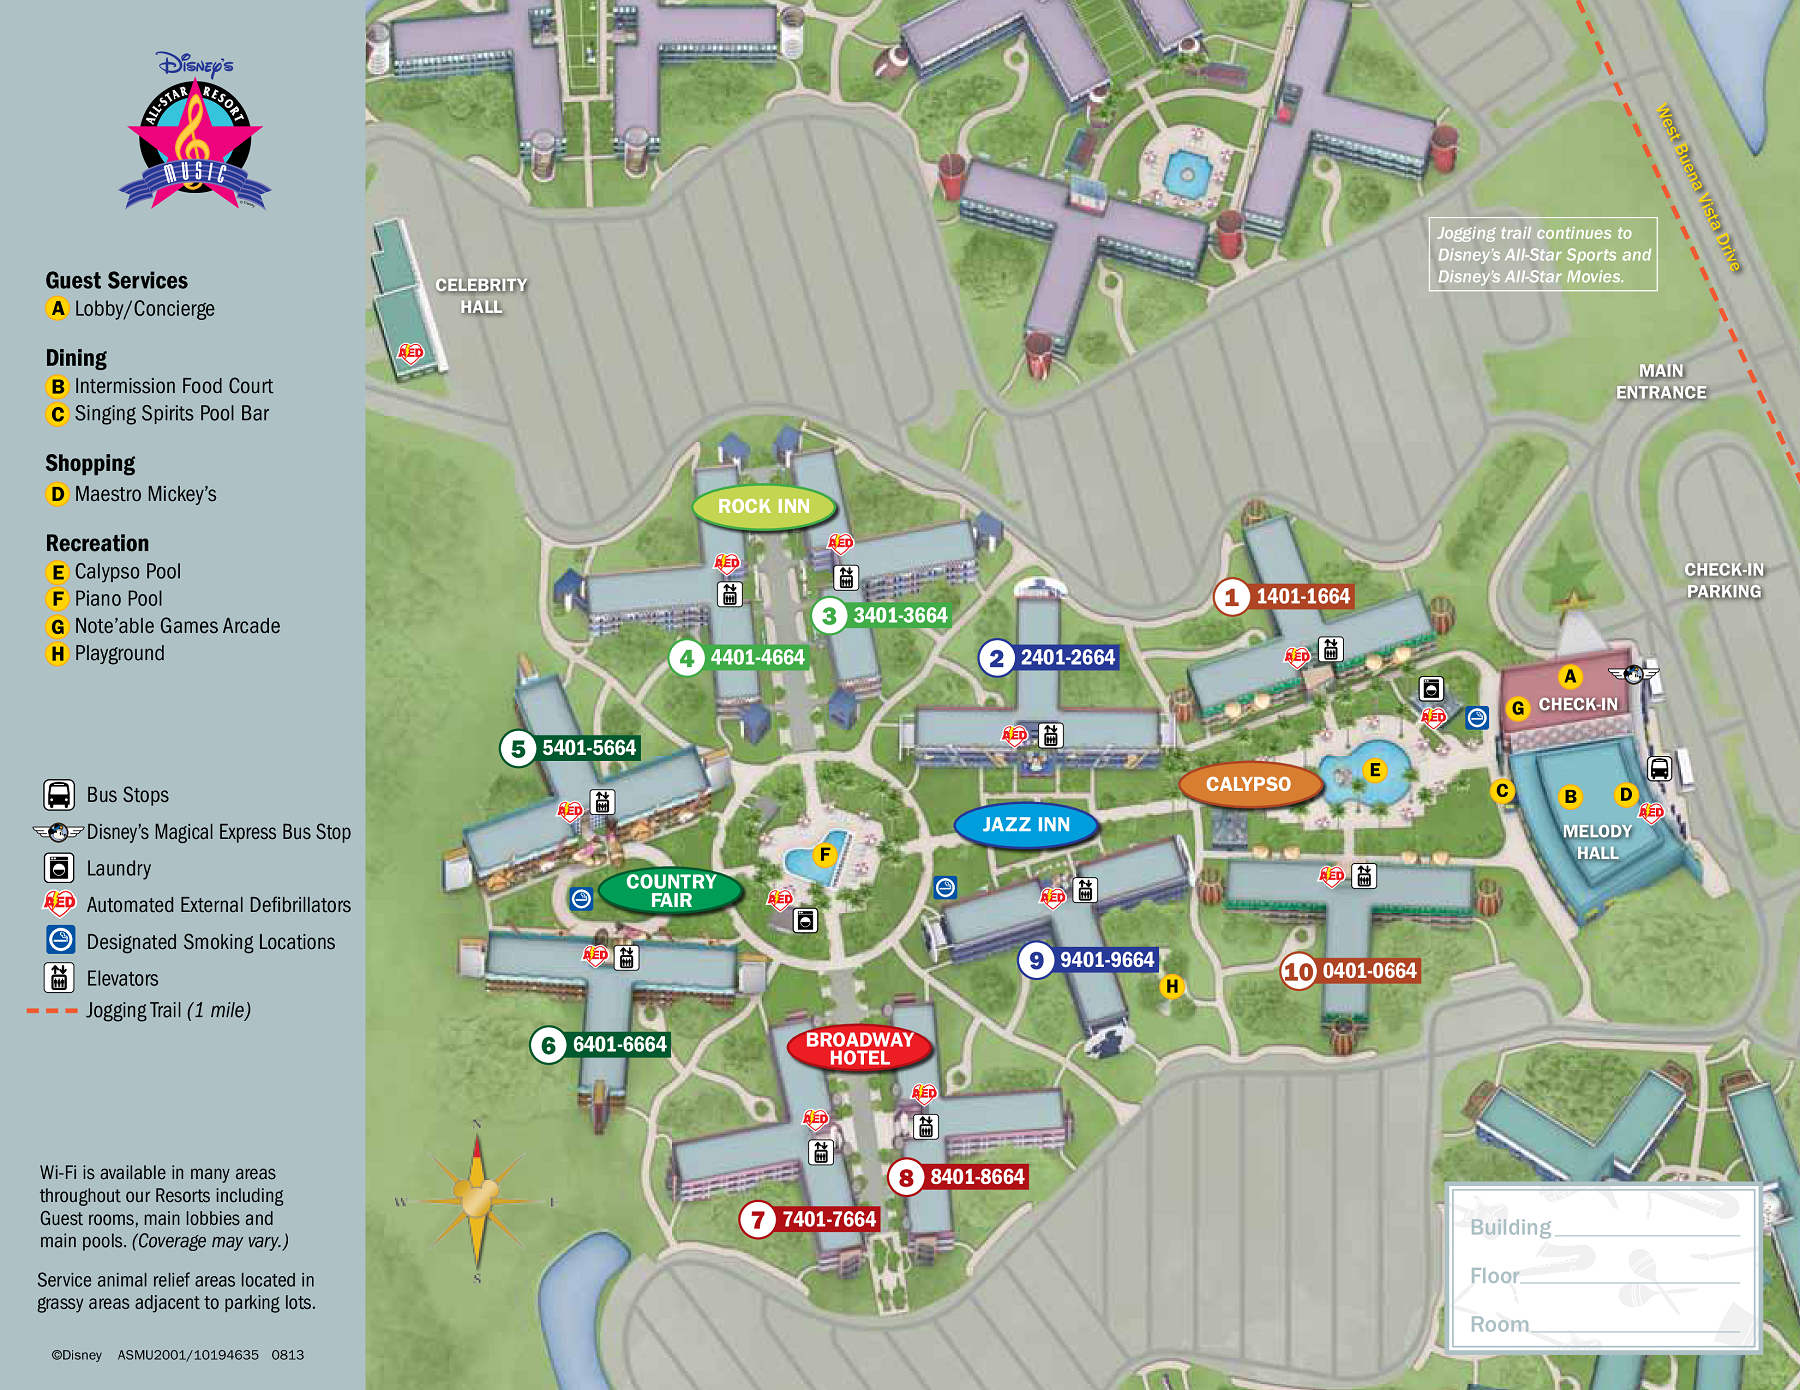 Walt Disney World Maps | WDW Planning on